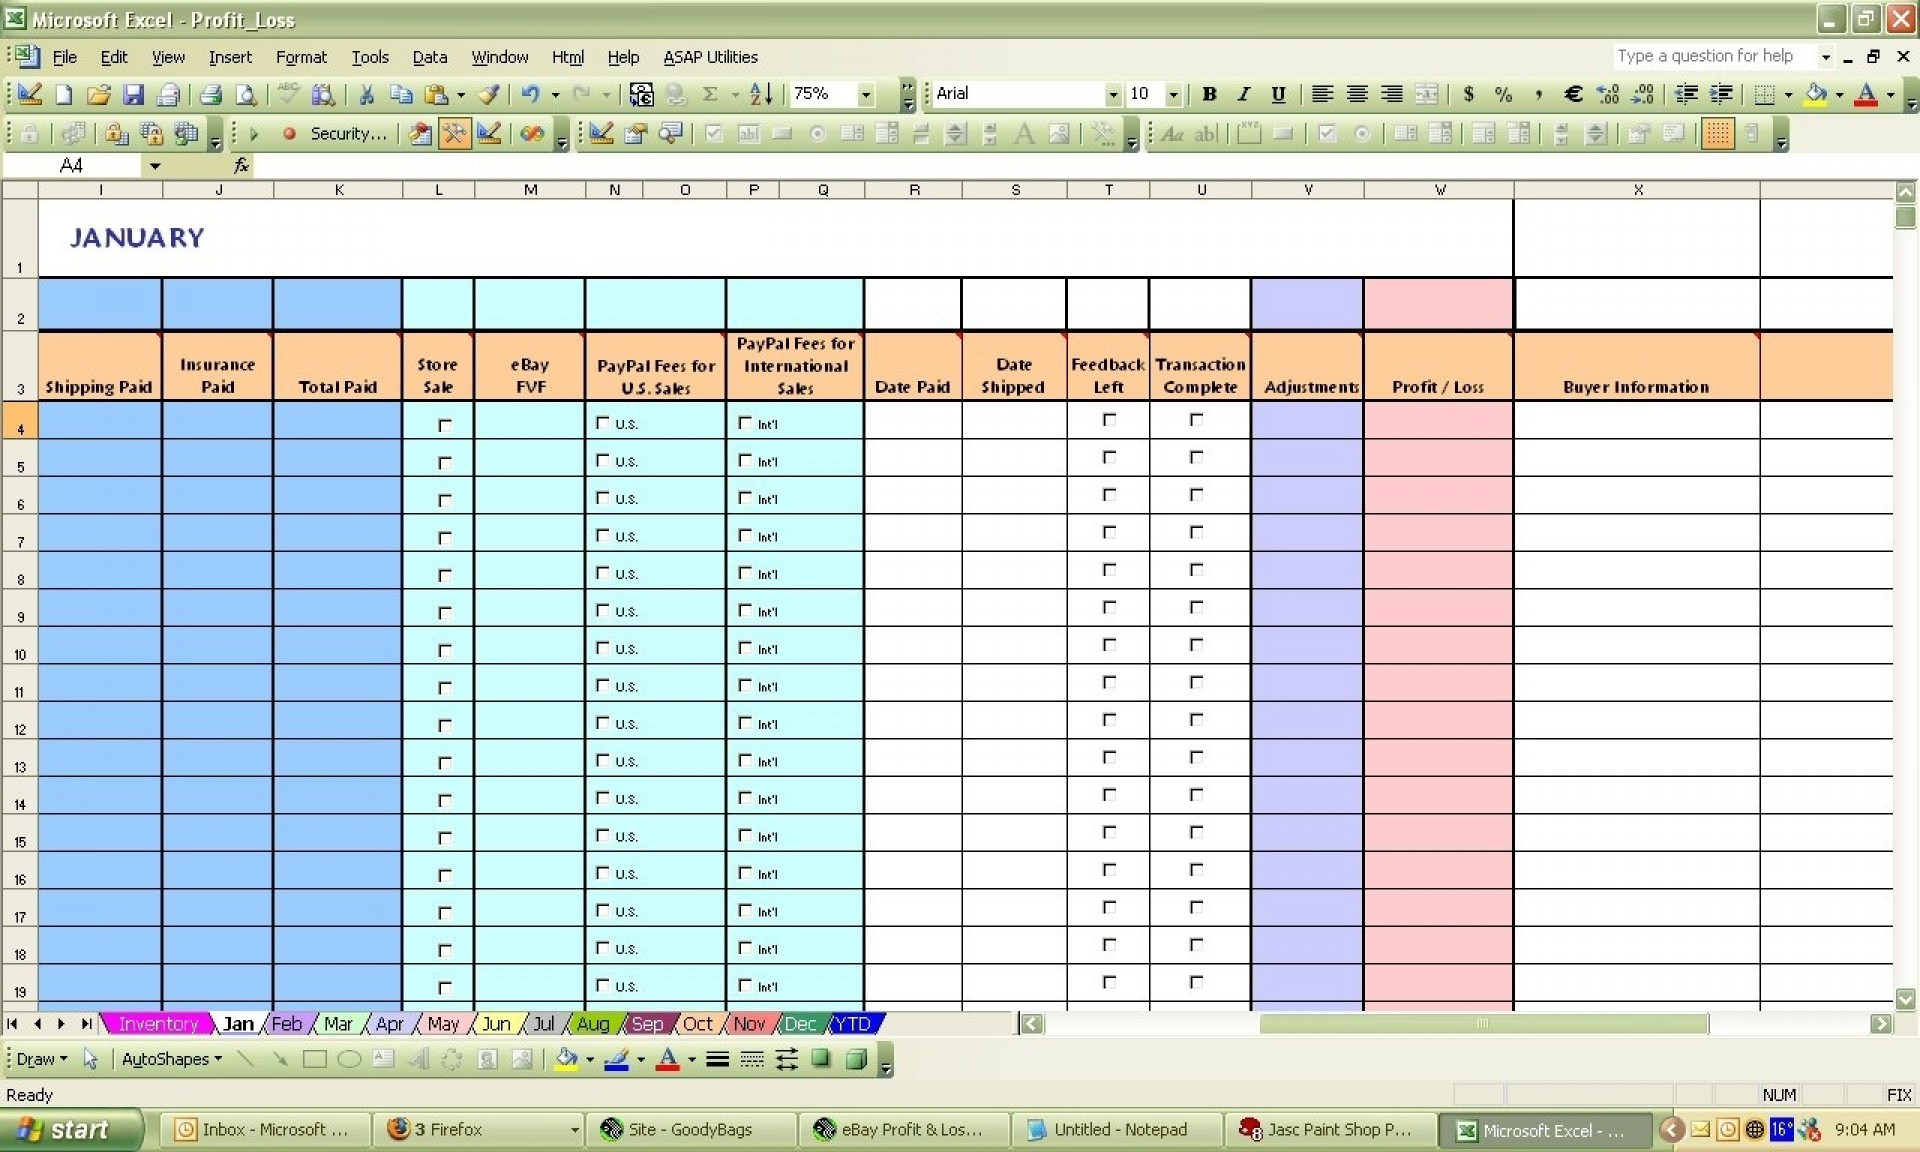 Profit Loss Spreadsheet Regarding 016 Profit Loss Spreadsheet Template As Well With Example Plus